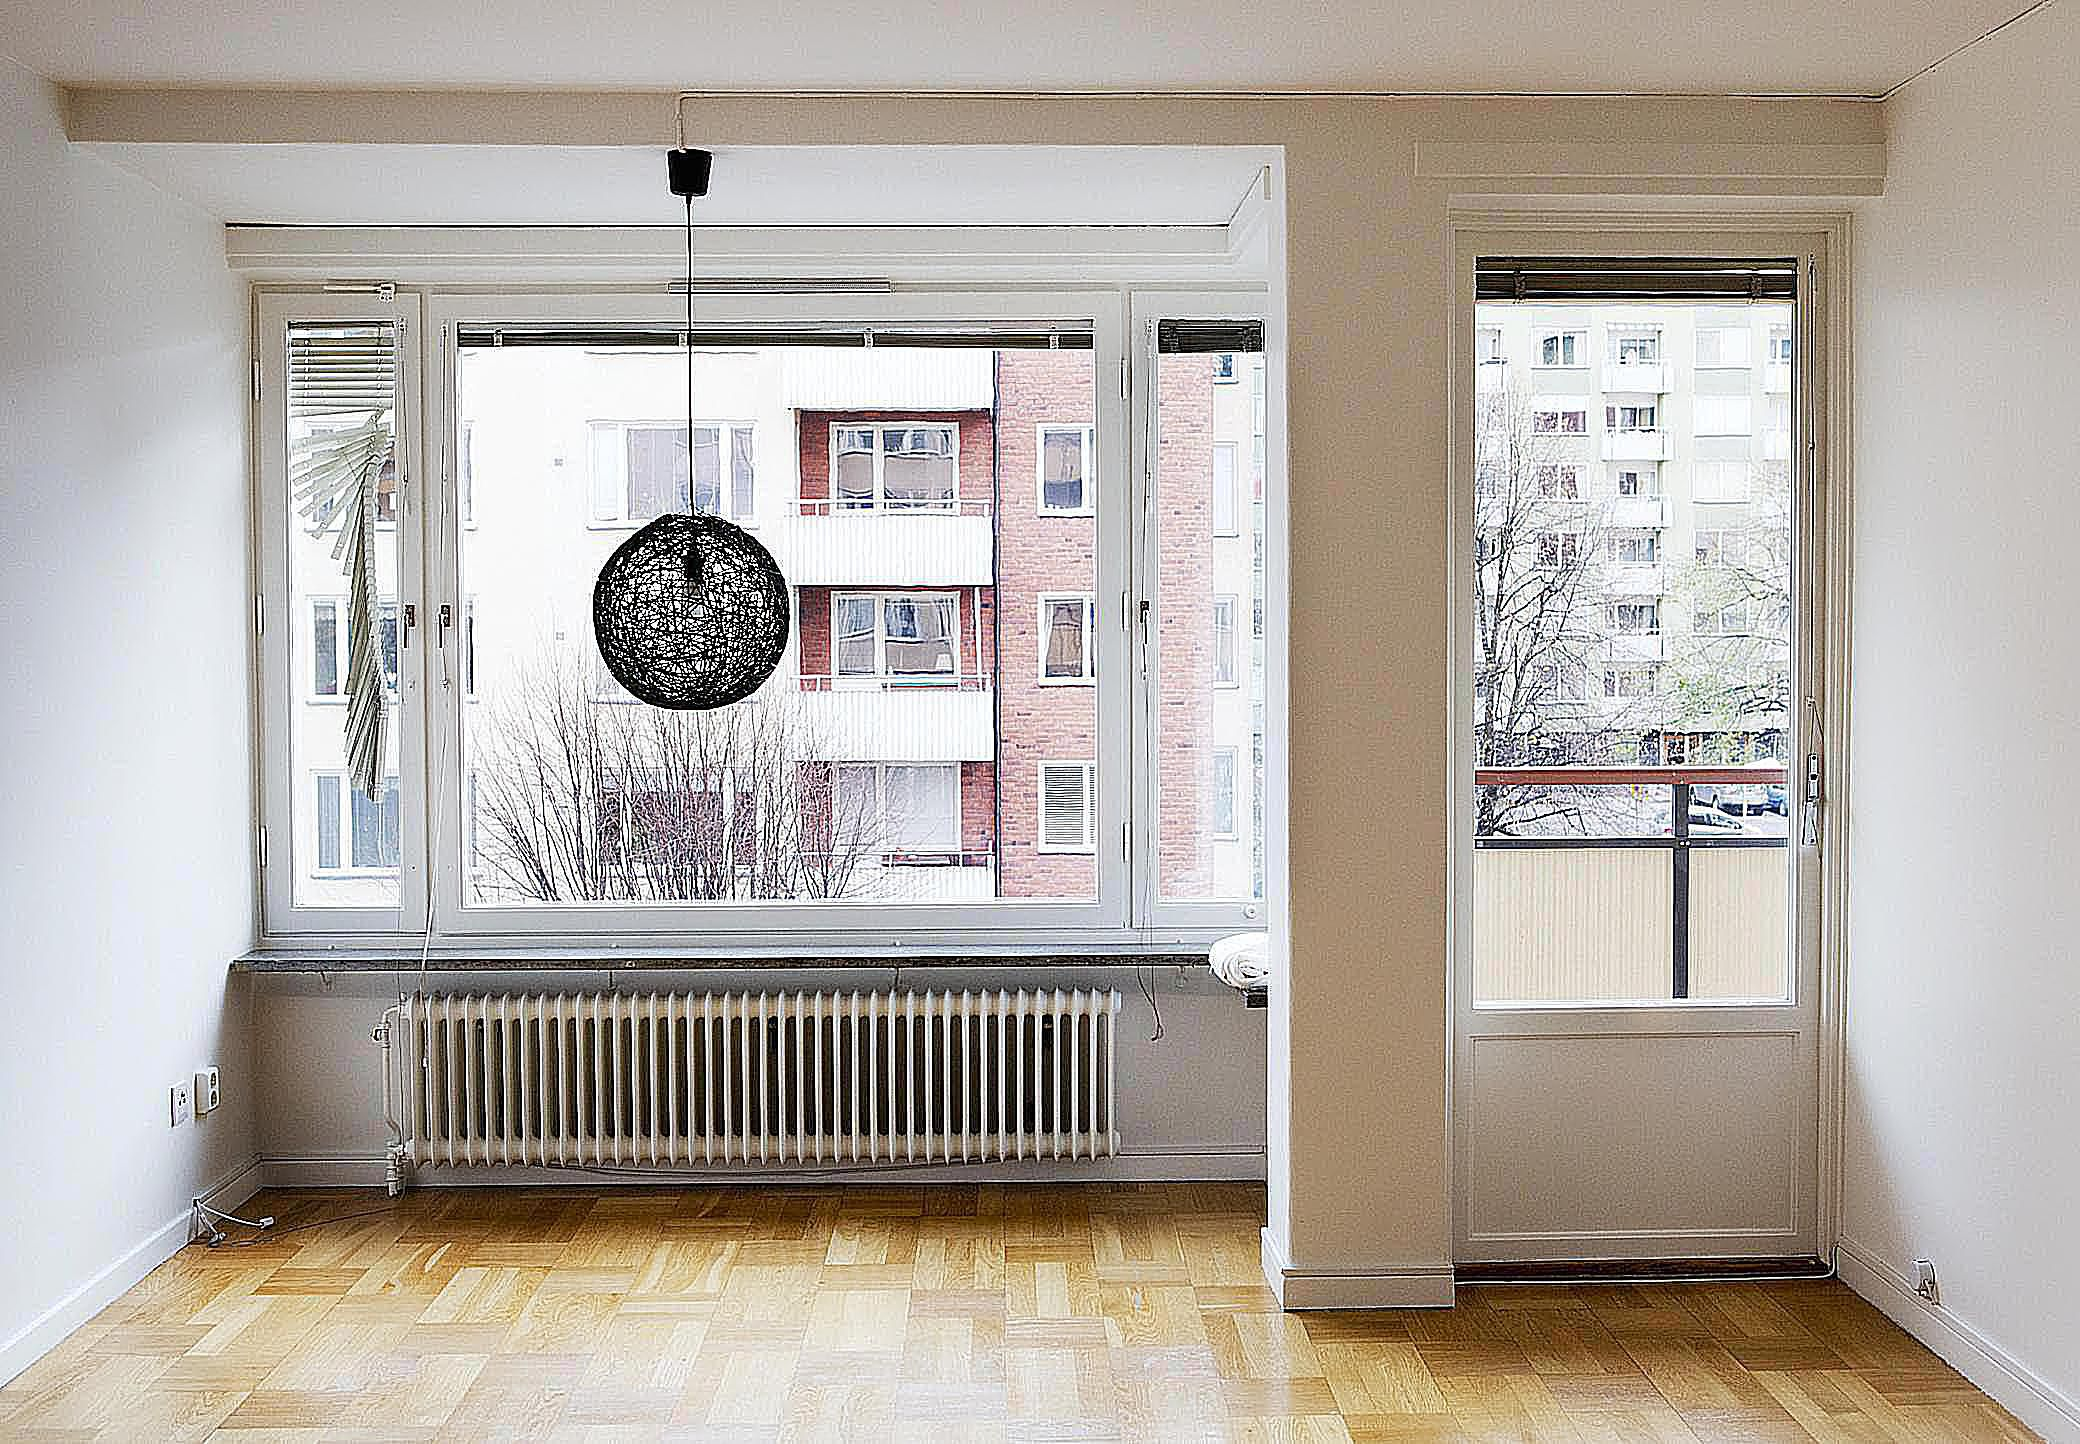 Efficiency Apartment Vs Studio Apartment Renting Studio Vs One Bedroom